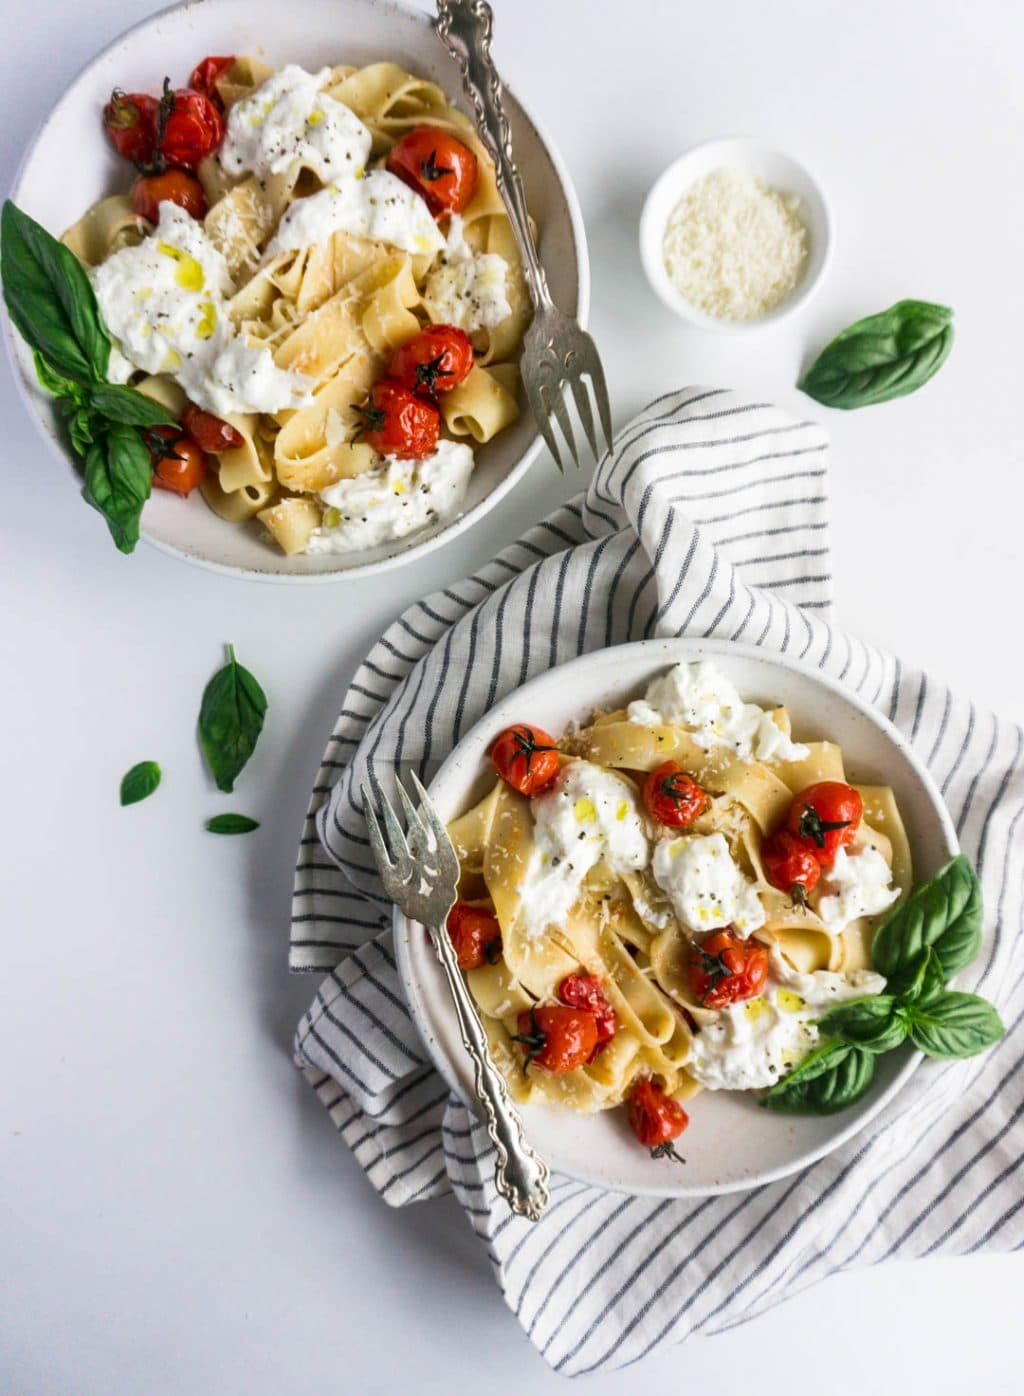 Two bowls of cherry tomato pasta with burrata, and a small bowl of parmesan to the side